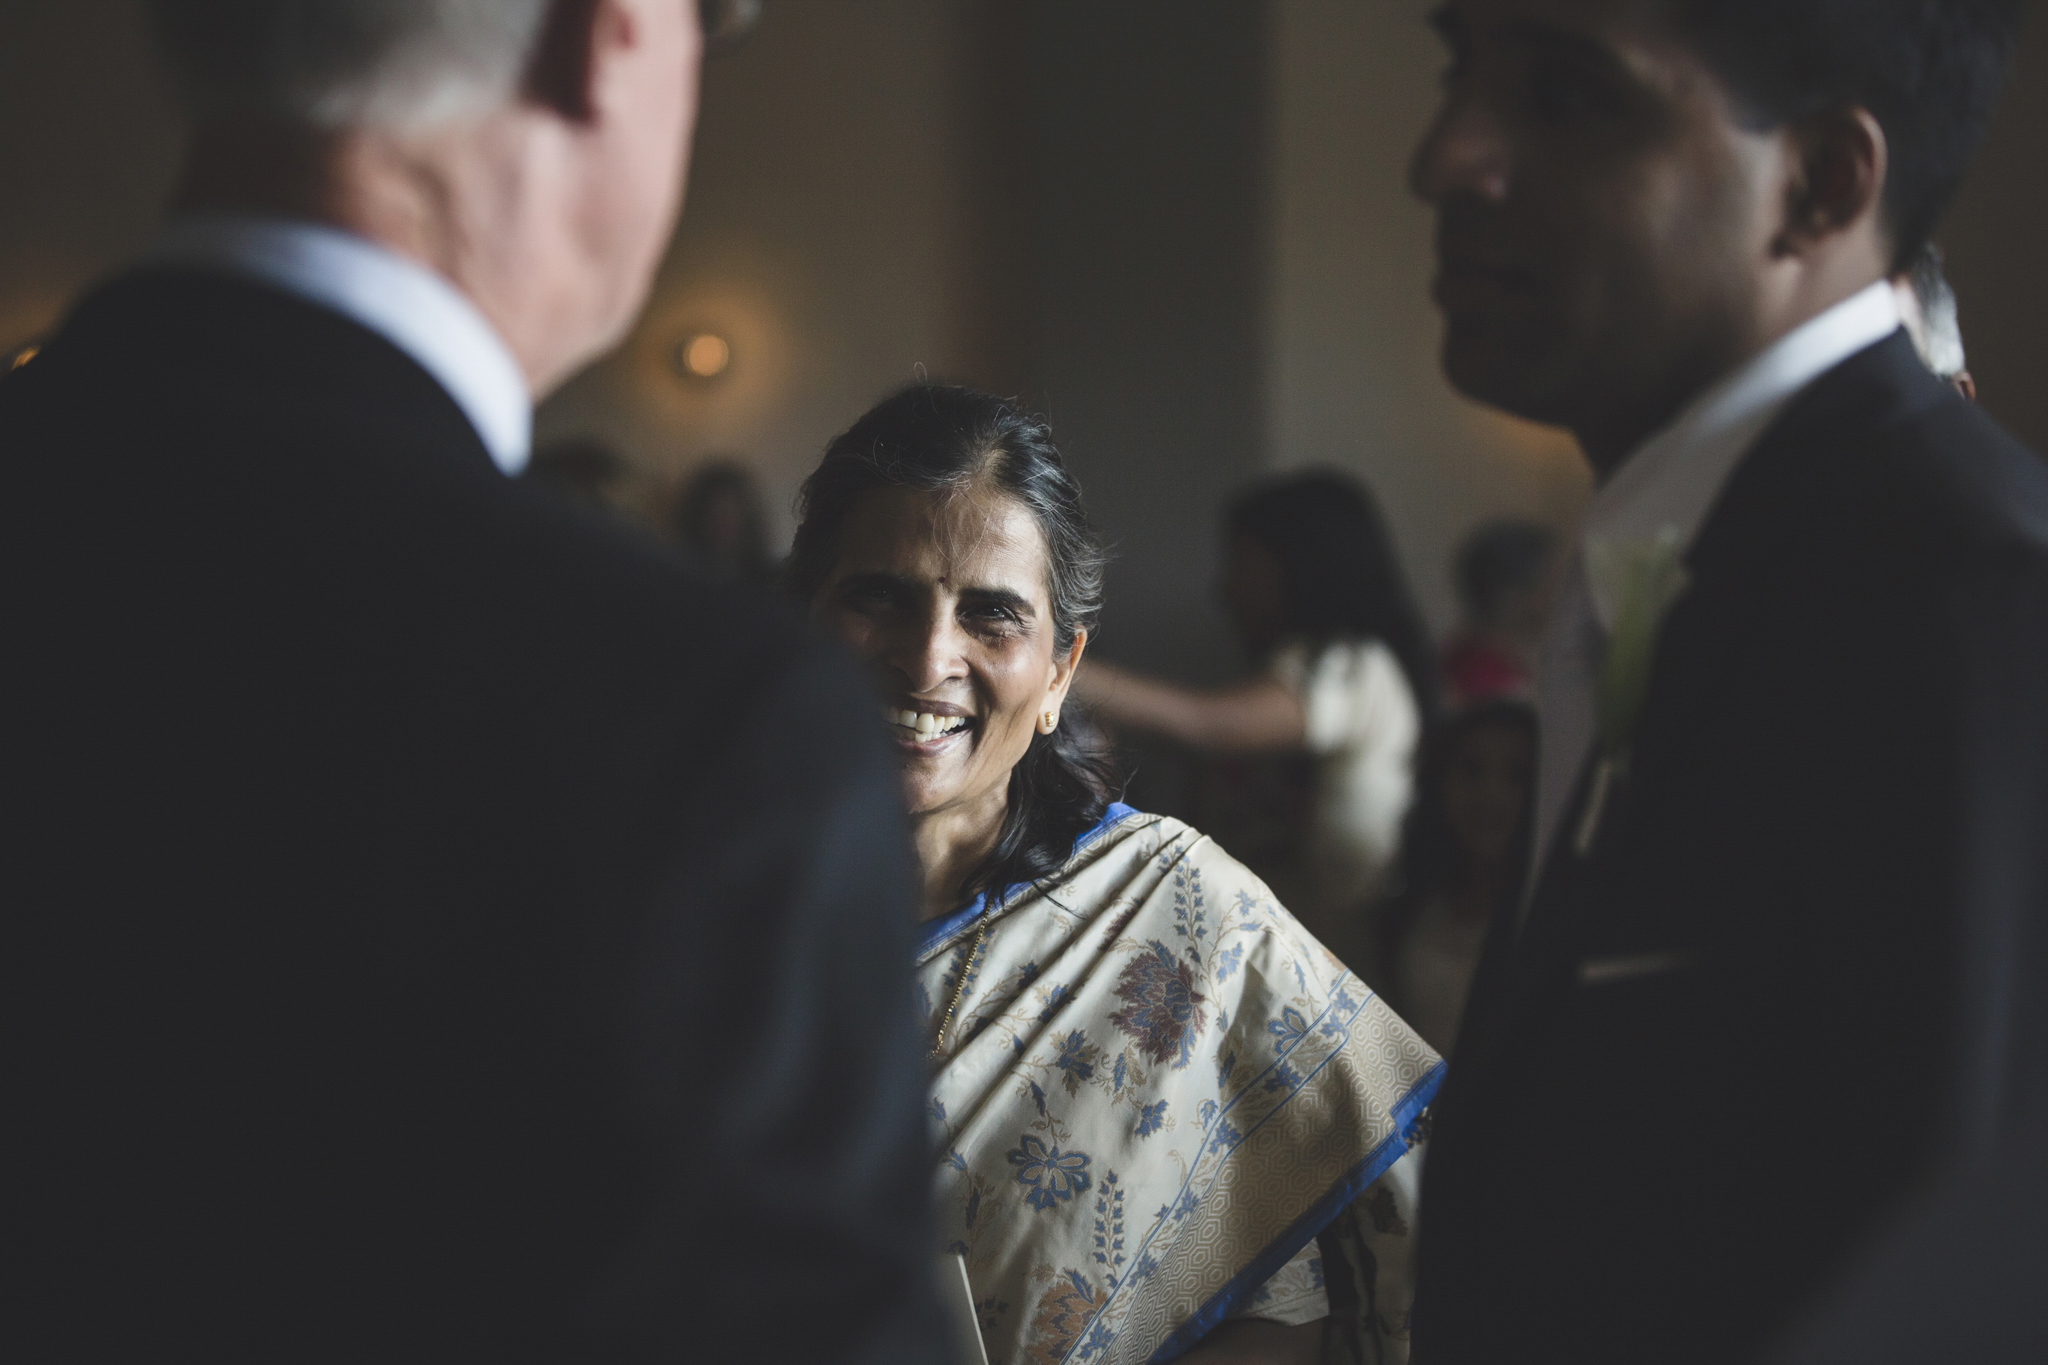 aria minneapolis indian wedding photographer-89.jpg